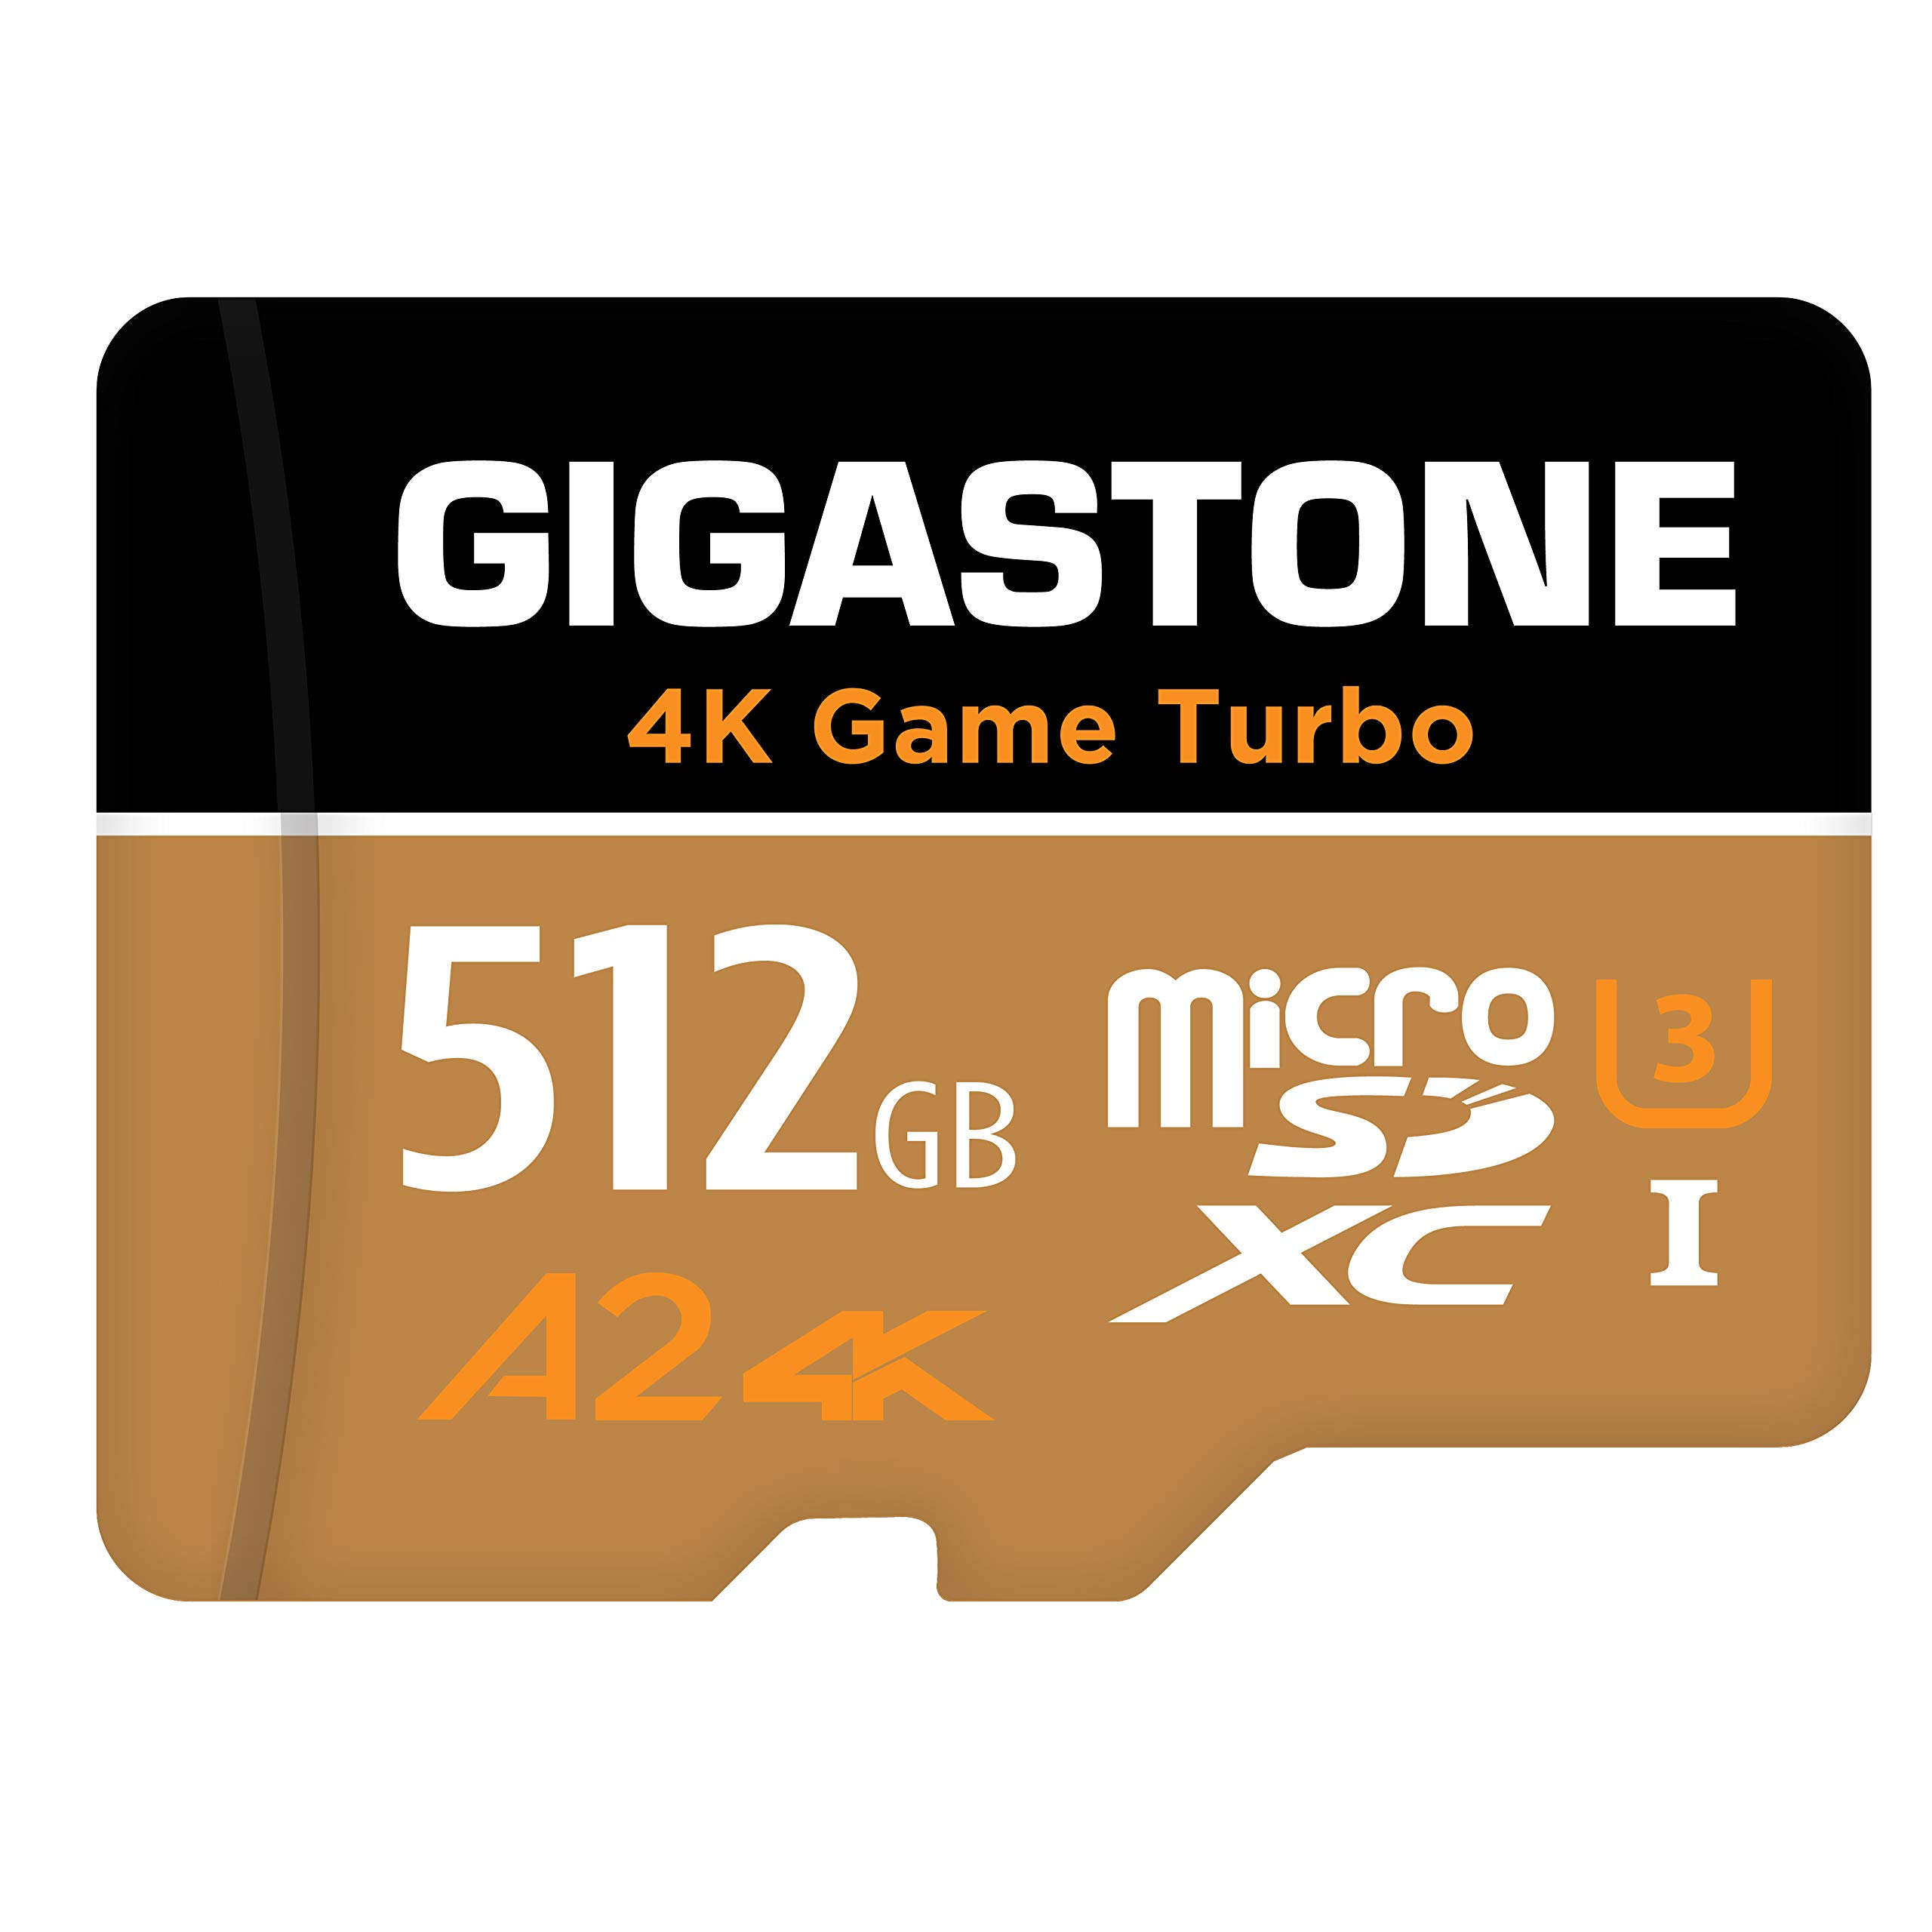 Gigastone 512GB Micro SD Card, 4K UHD Game Turbo, A2 Run App, Nintendo Switch Compatible R/W 100/80MB/s, UHS-I U3 C10, with [5-Yrs Free-Data-Recovery]